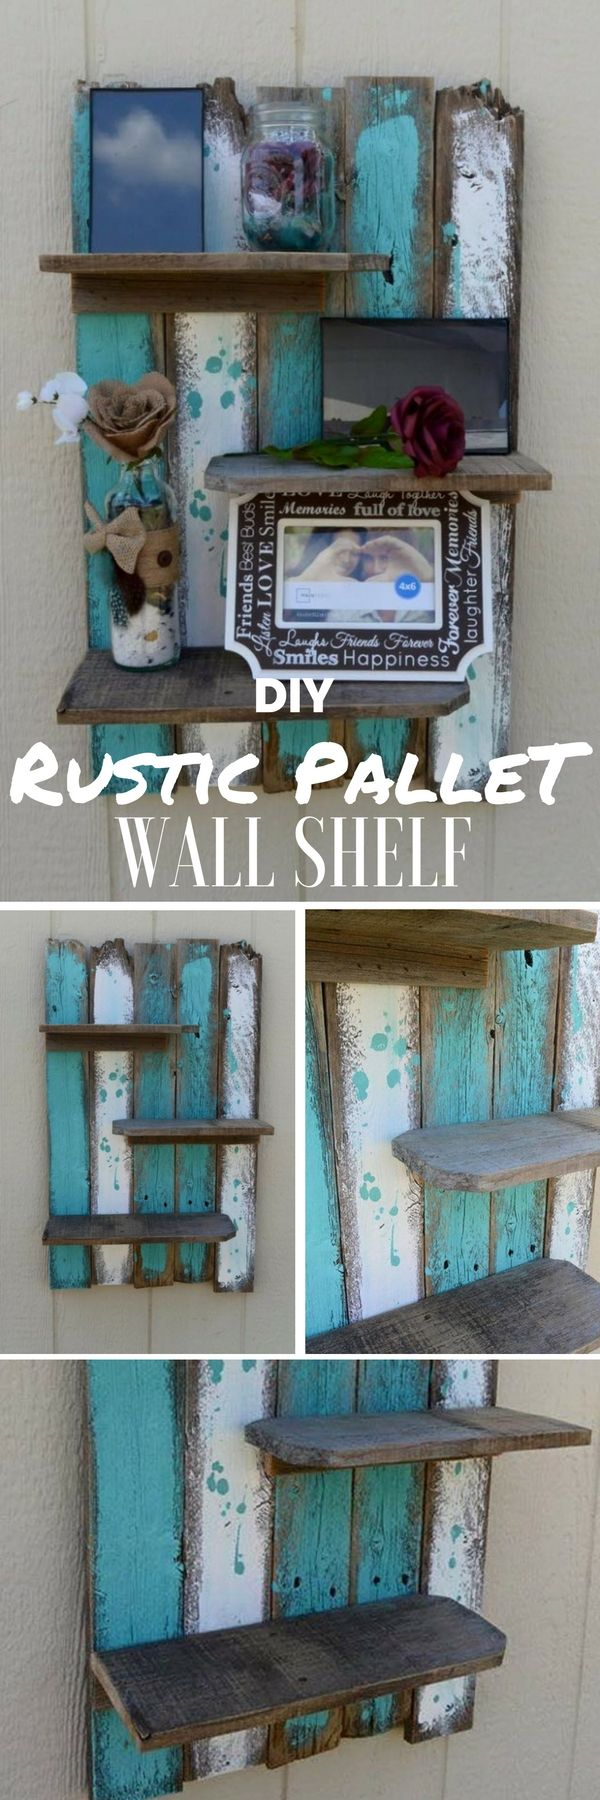 Check out the tutorial: #DIY Rustic Pallet Wall Shelf @istandarddesign